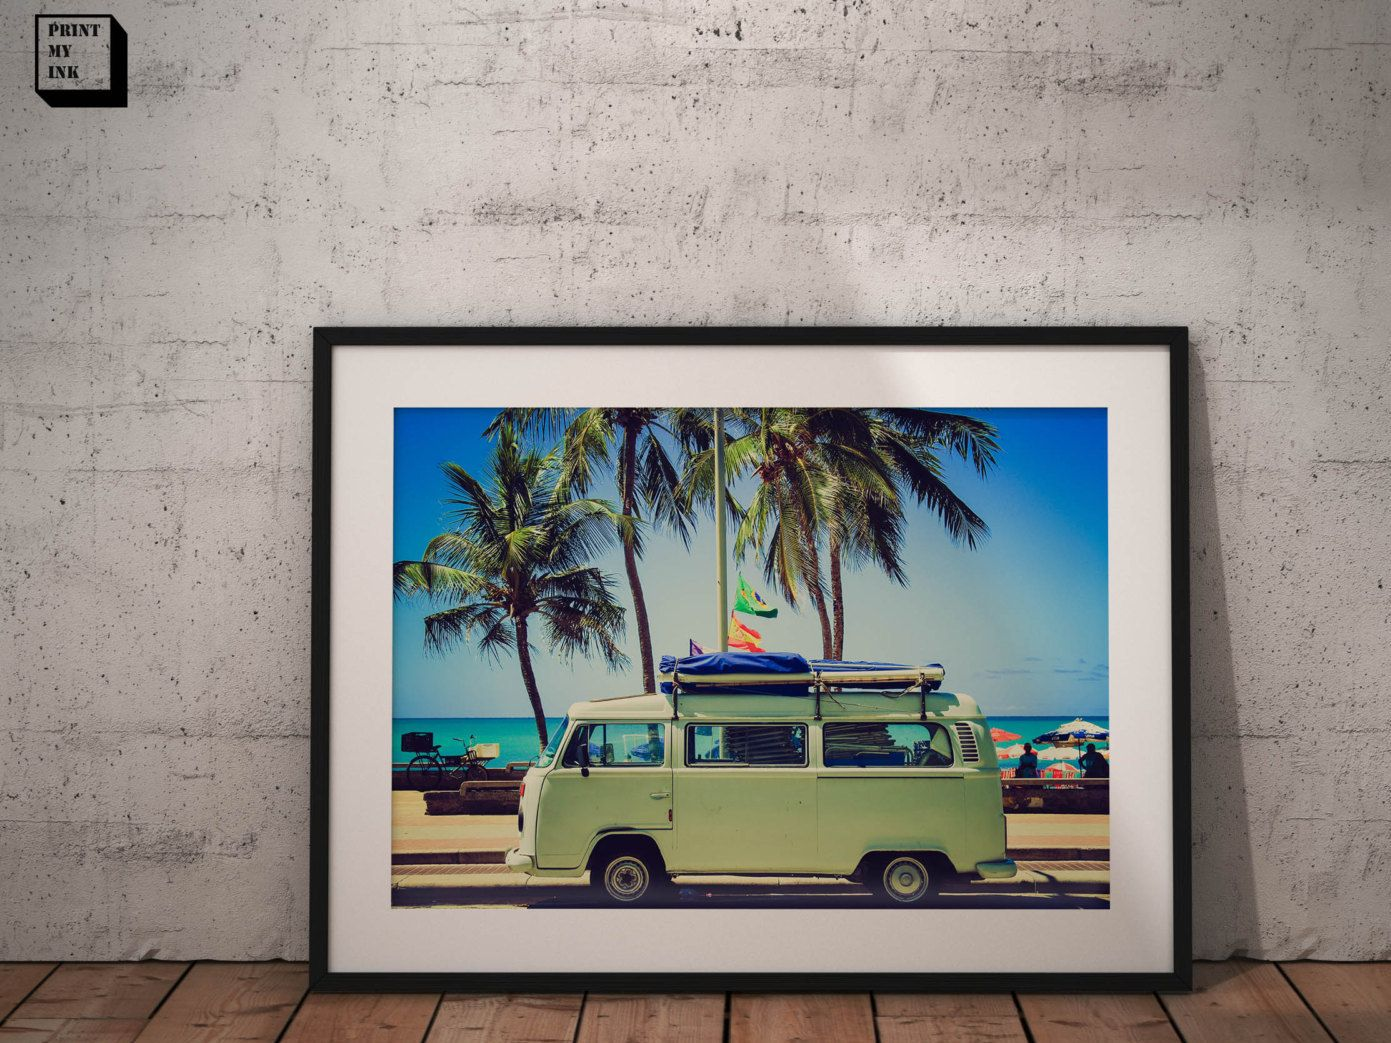 vw camper van print, vw photography, vw photo, wall art, home decor, photography print, surf print, desert, vollkswagen van, vintage, 70s by PrintmyInk on Etsy